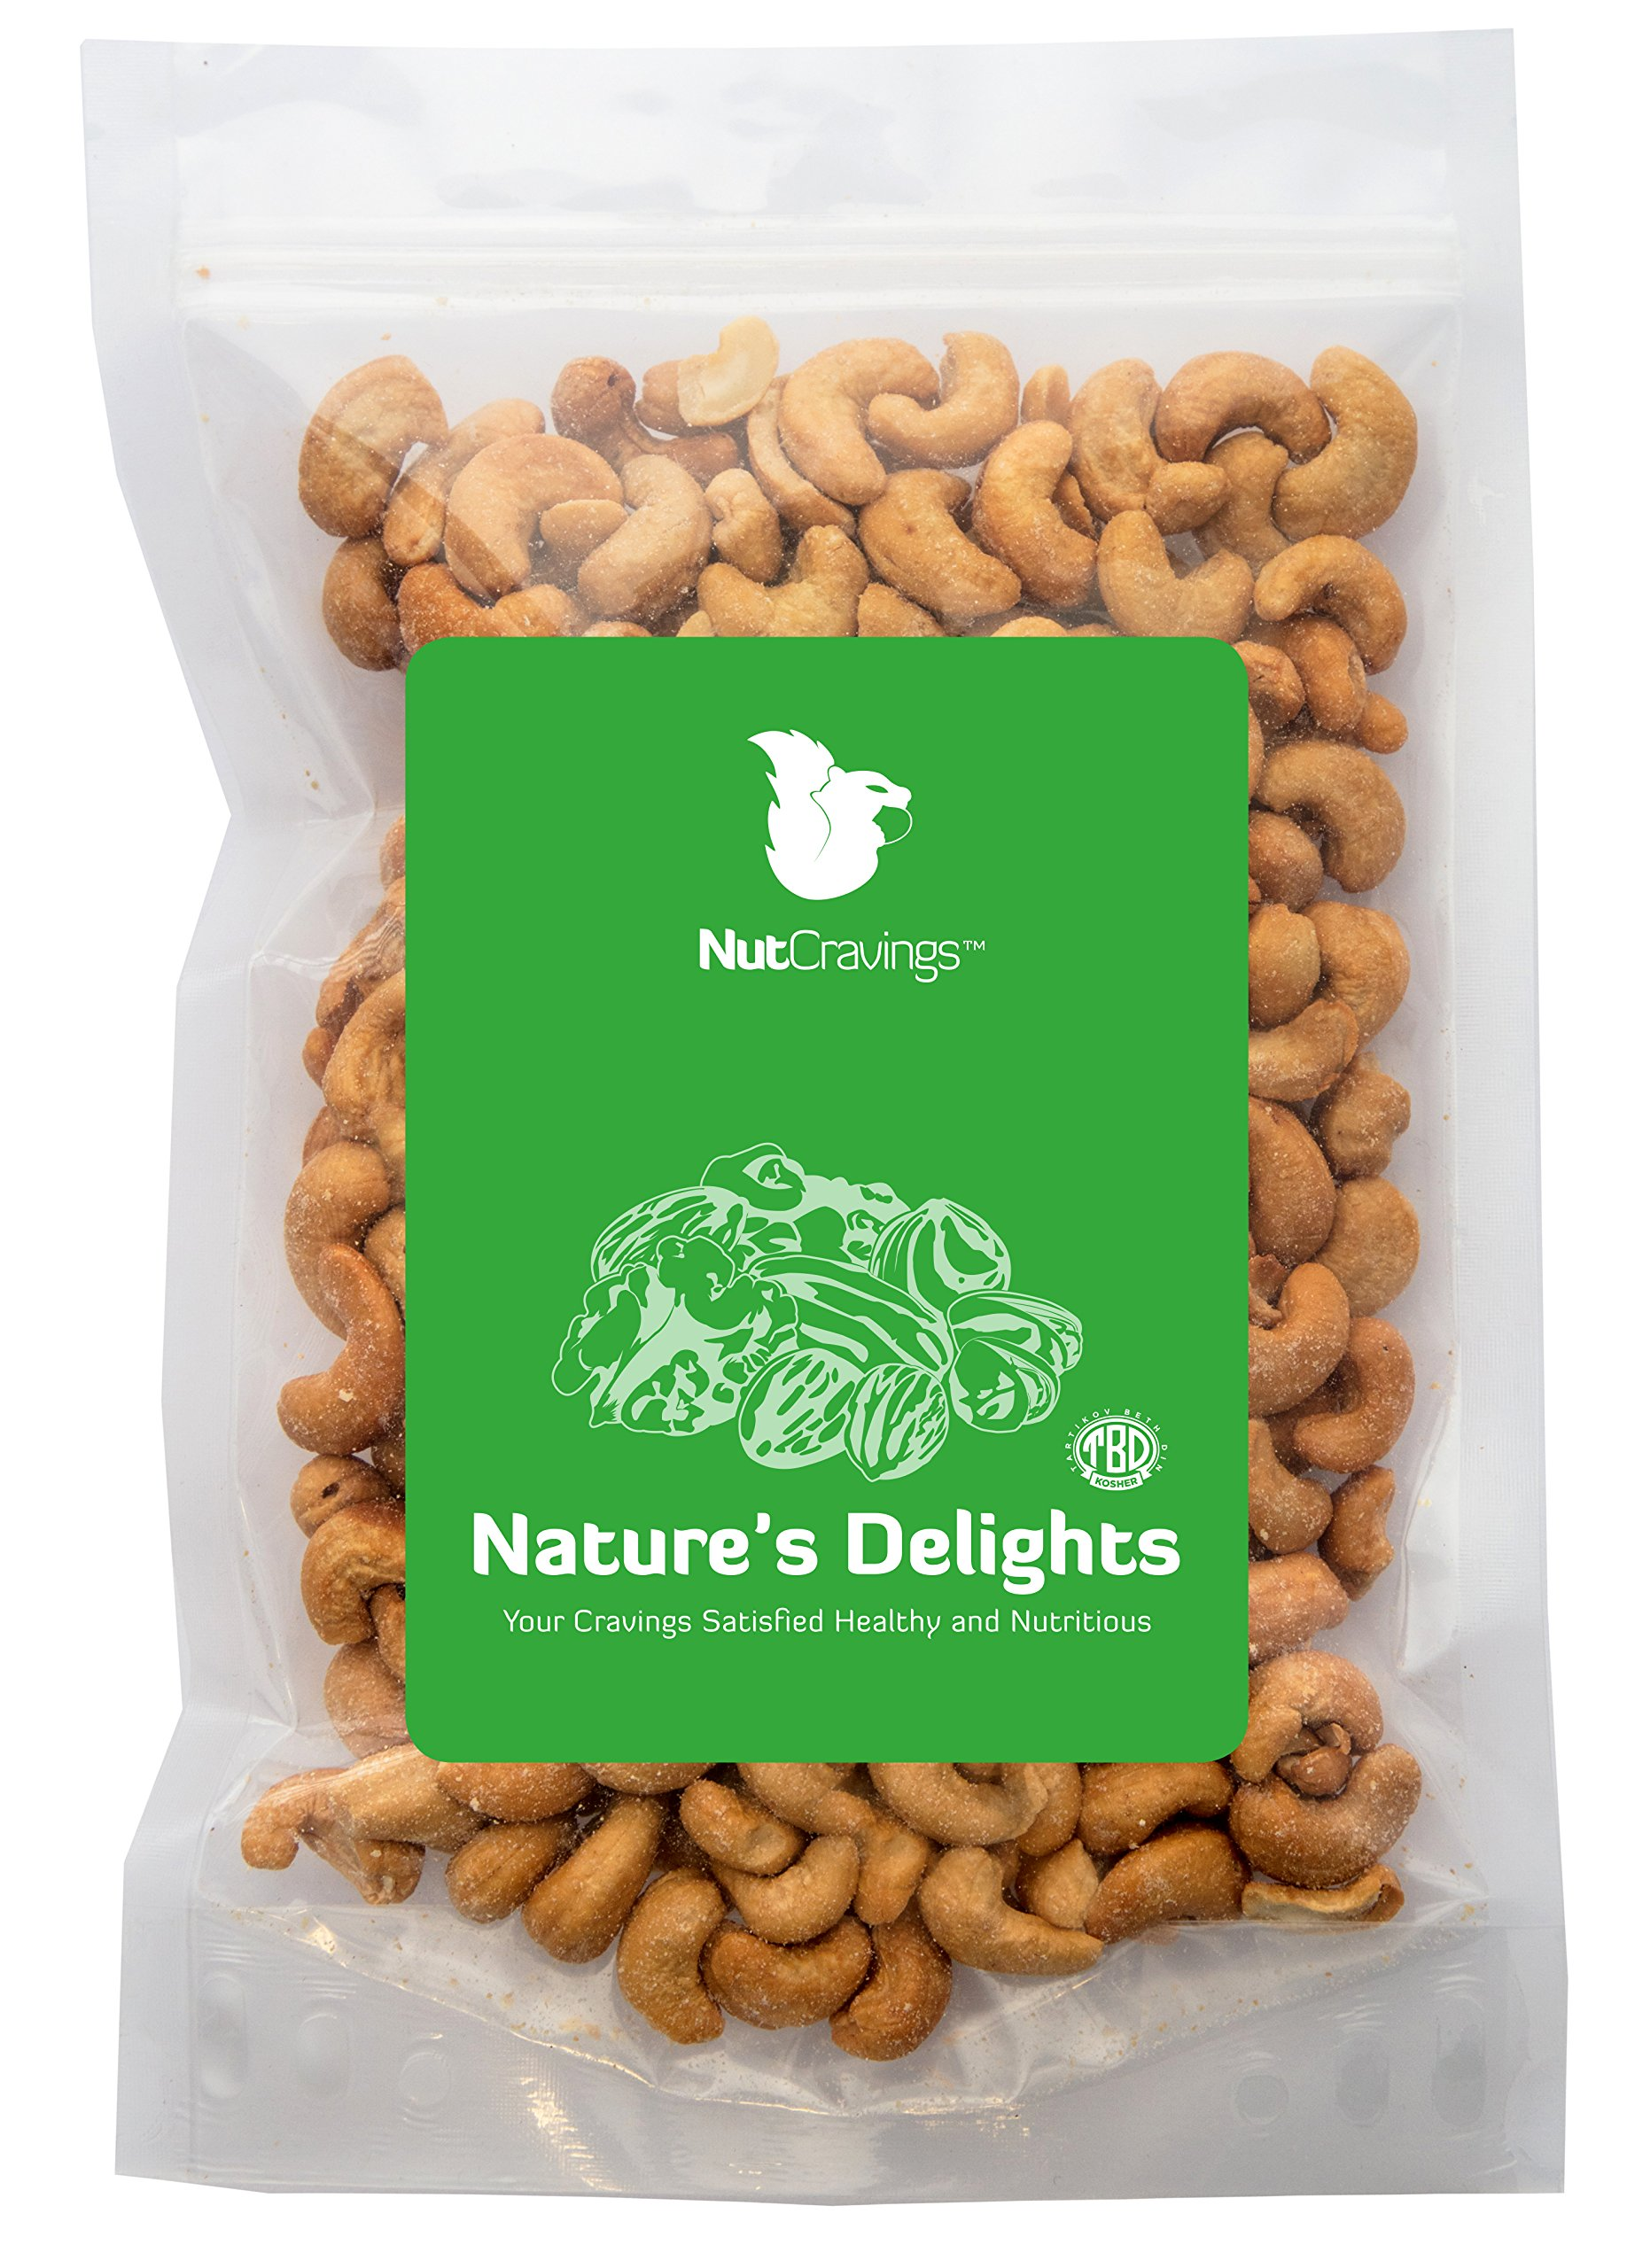 Nut Cravings Fancy Whole Cashews – 100% All Natural Roasted & Salted Premium Nuts – 1LB